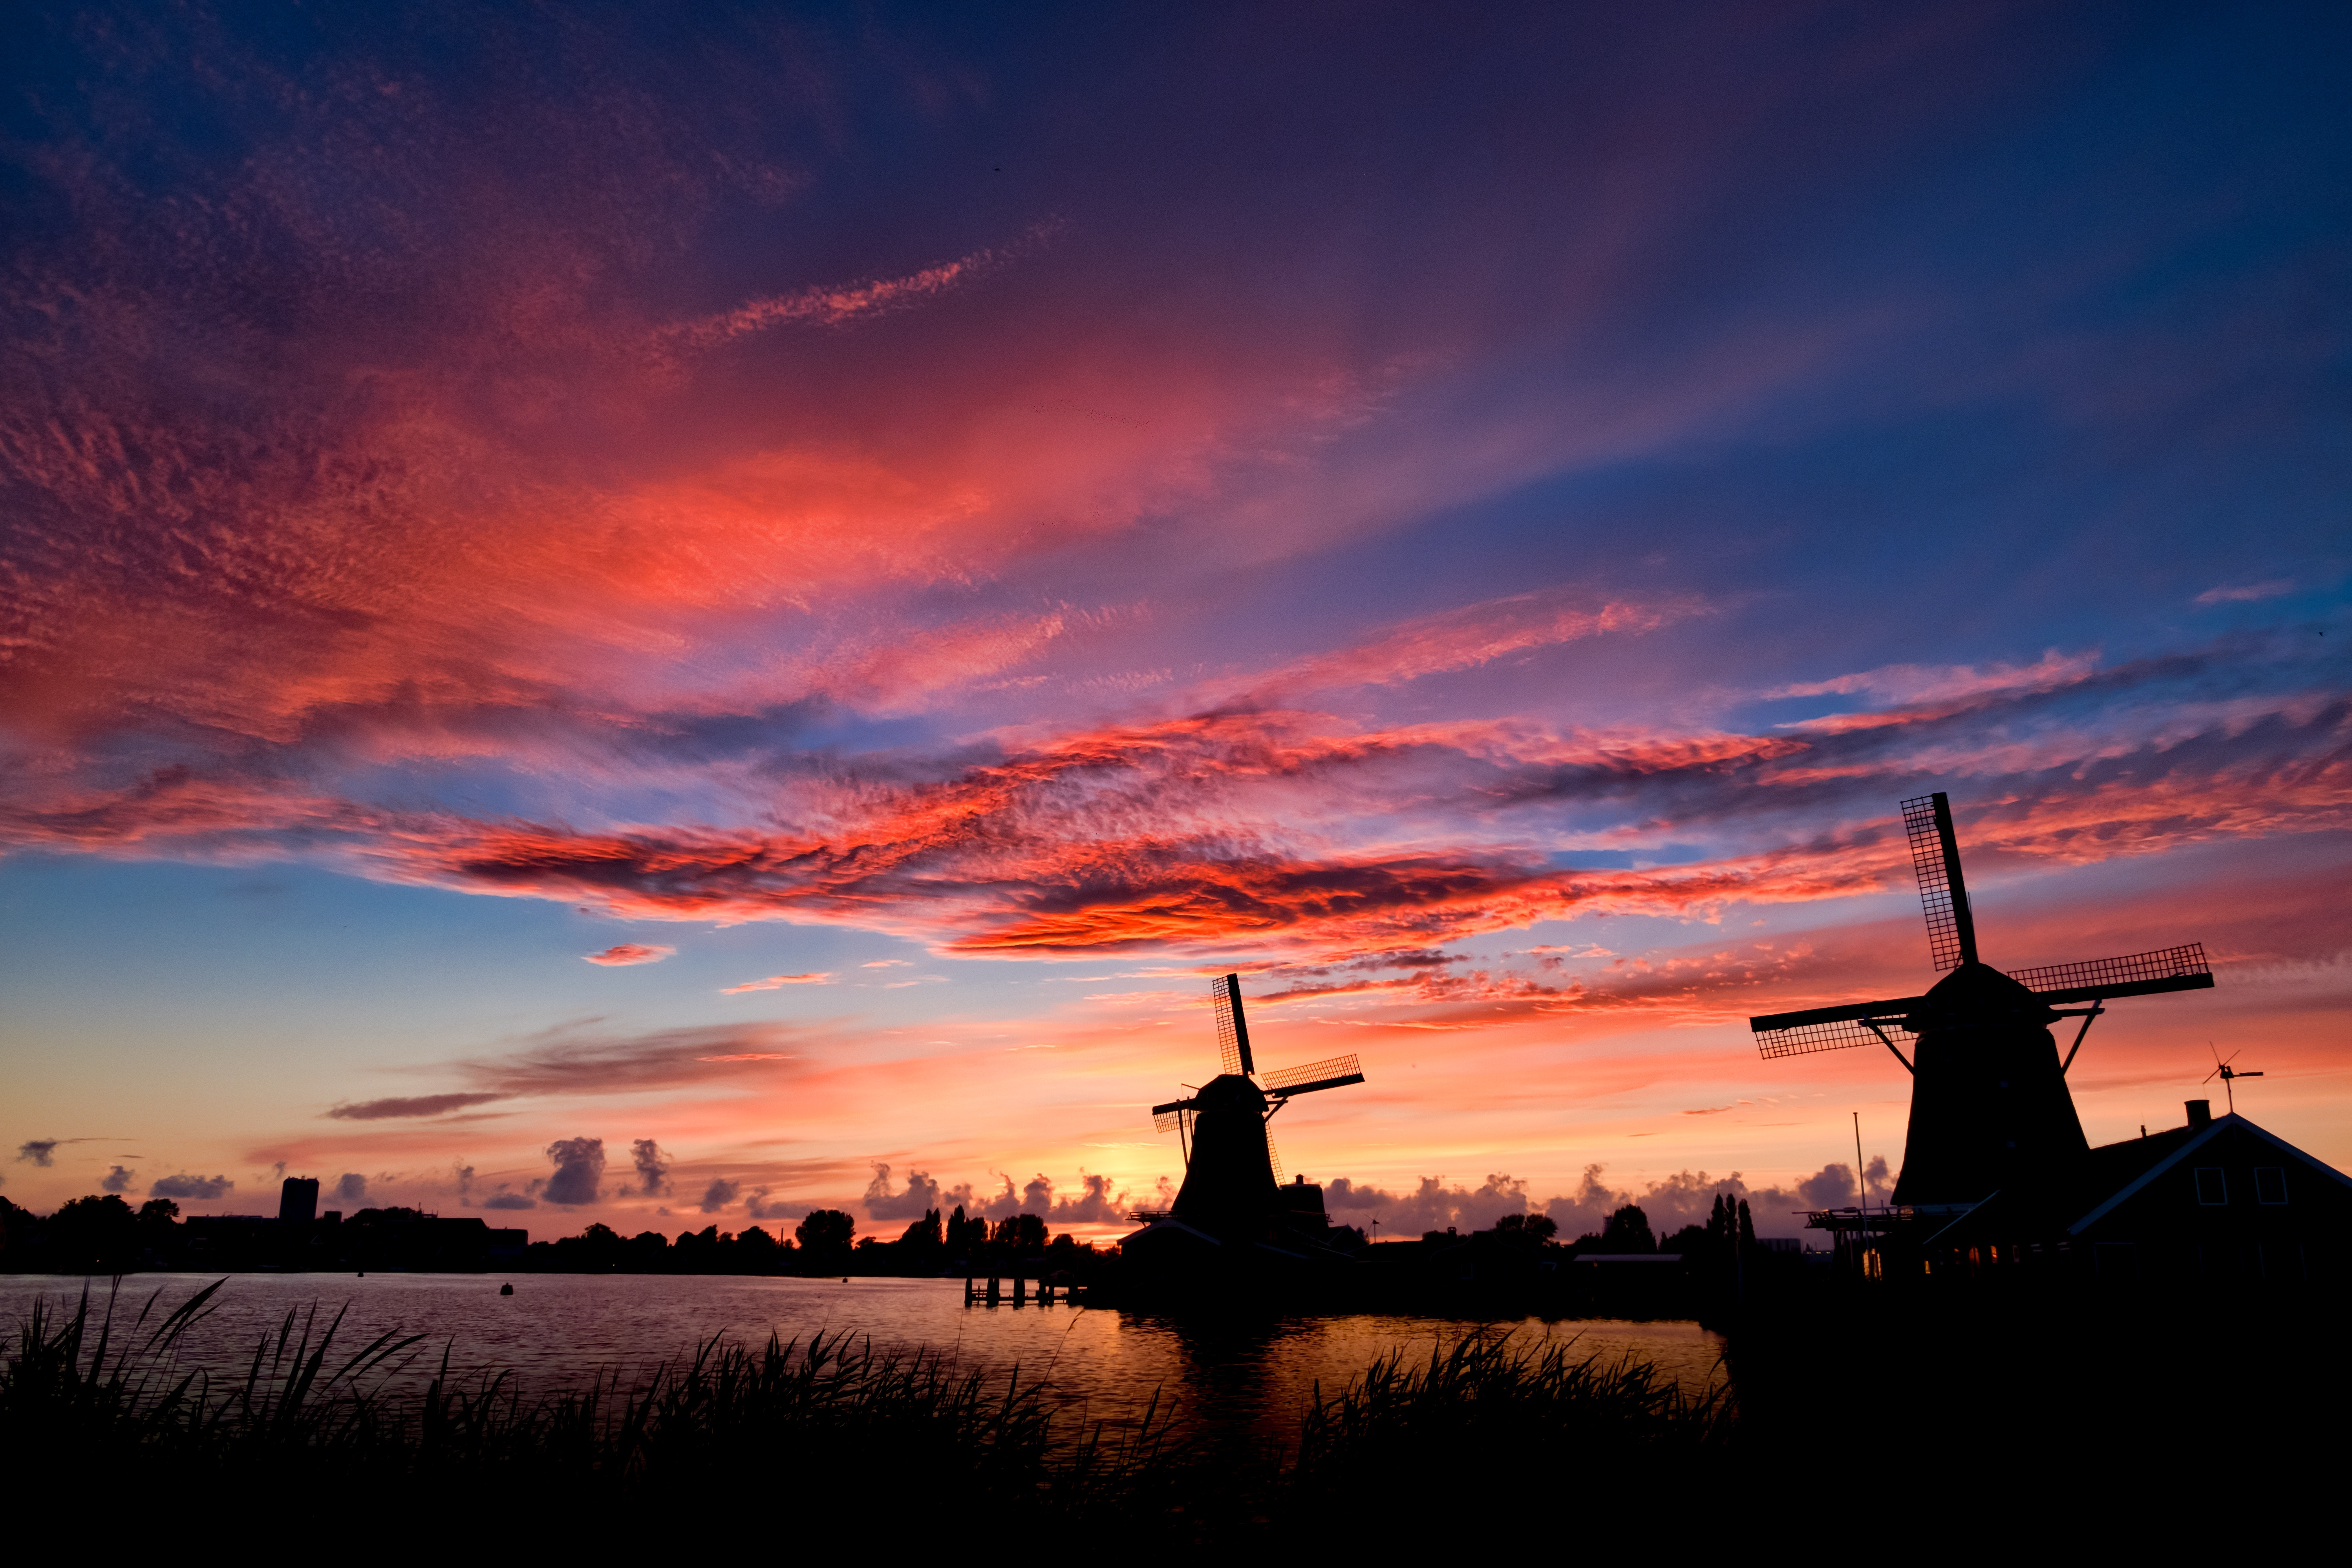 Driving in Holland with a view of a windmill at sunset